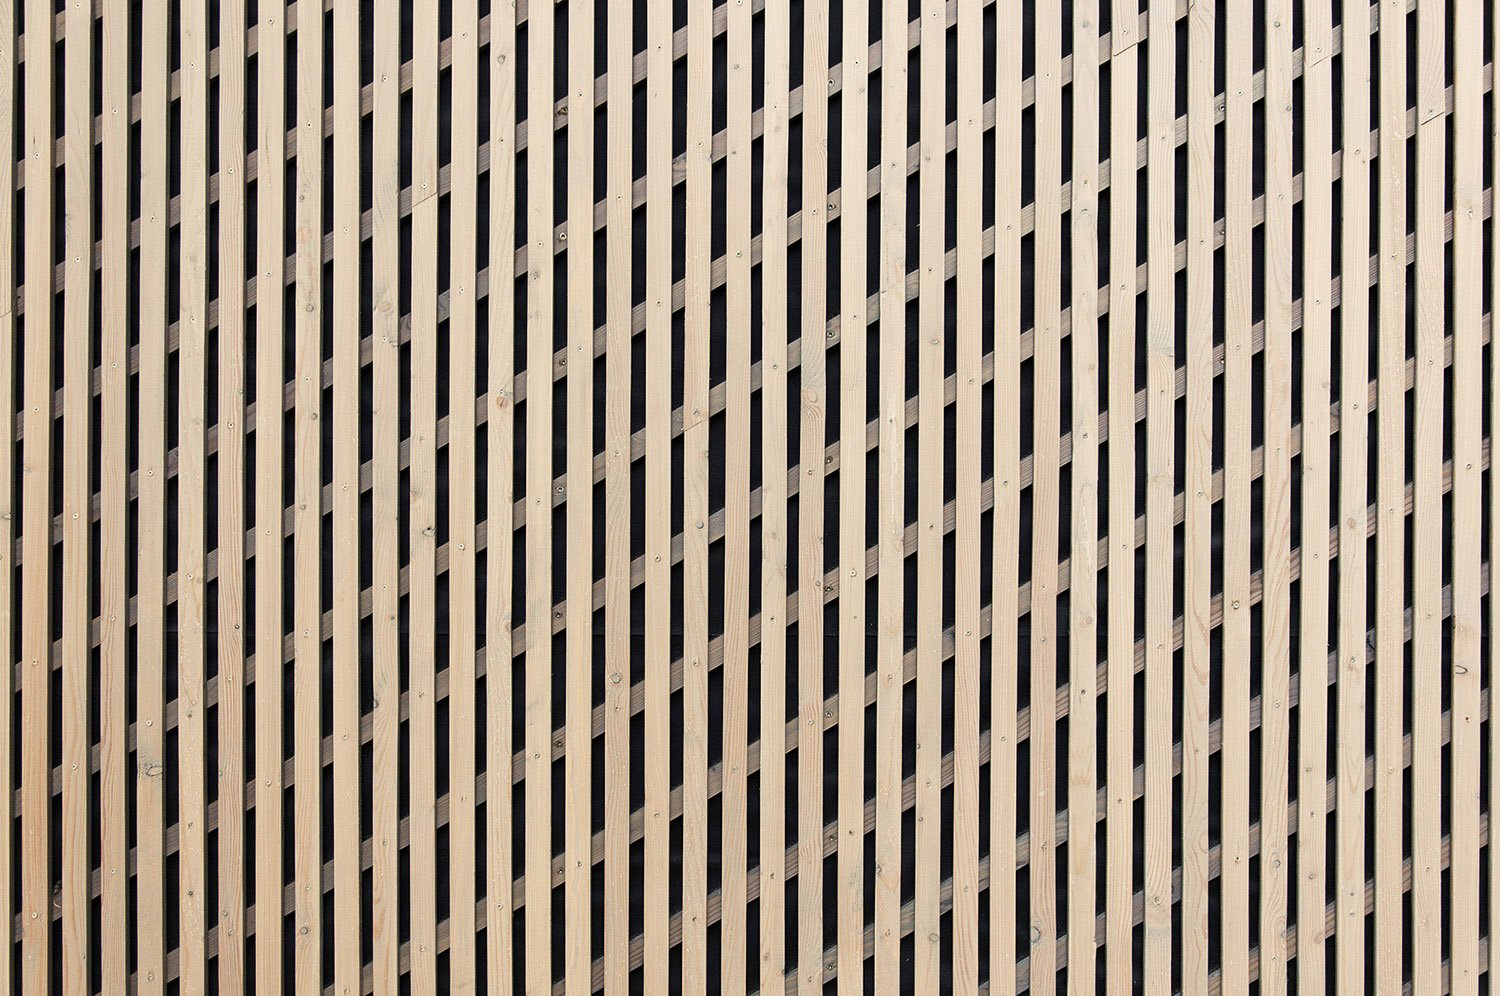 Larch wood lath facade: The visible substructure of the slats runs diagonally. Yonder - Architektur und Design